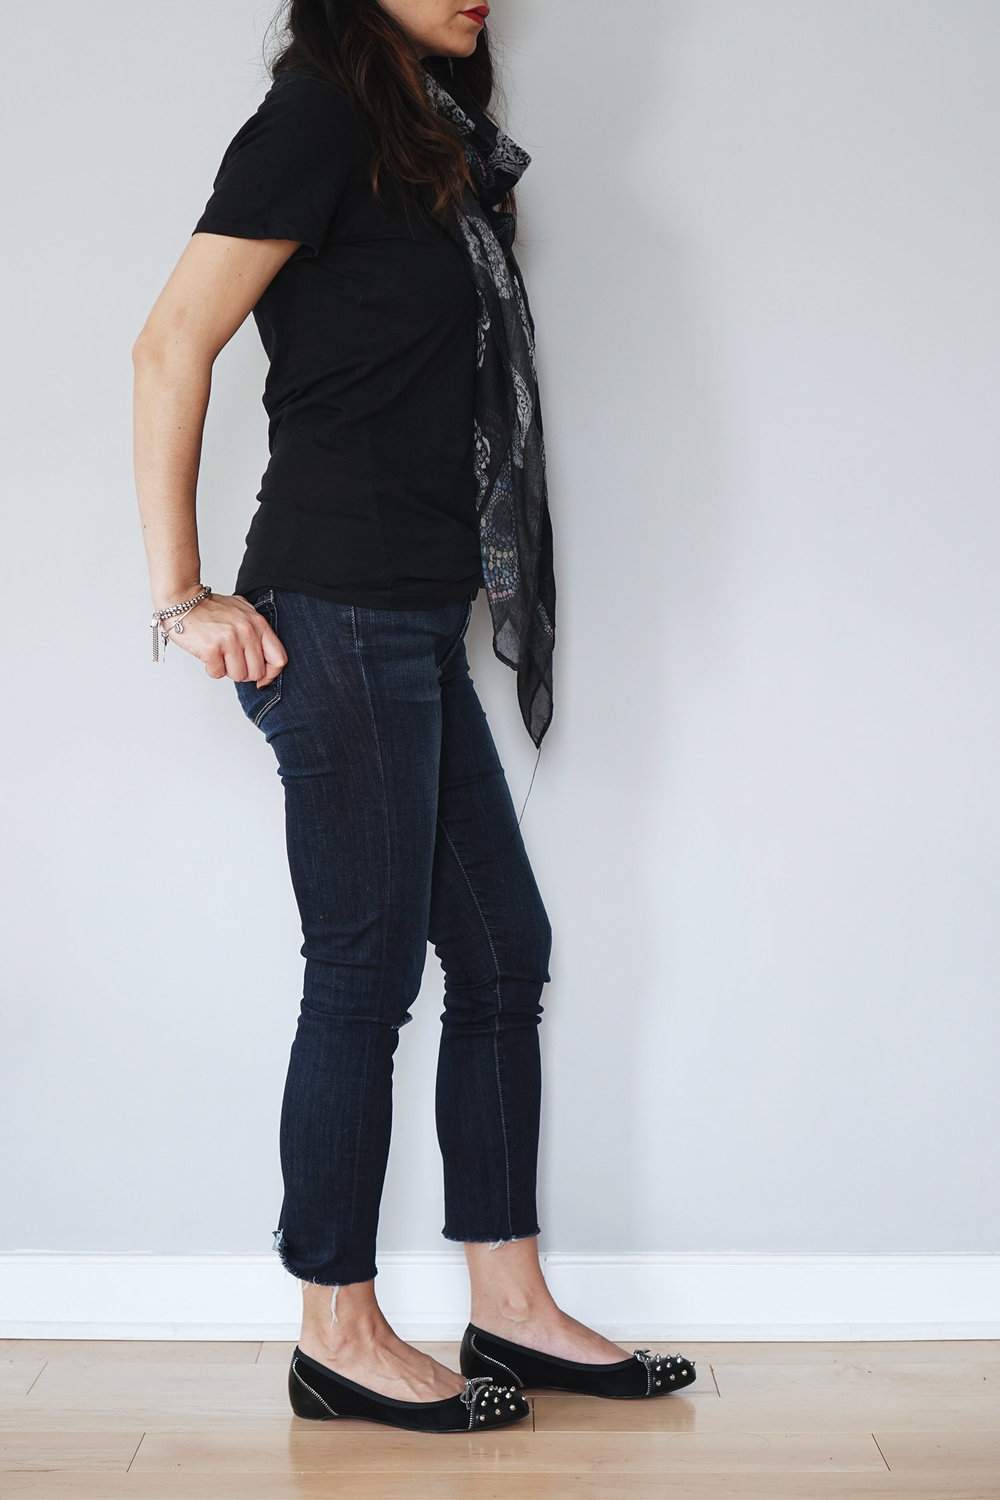 Concealed Carry Women Outfit